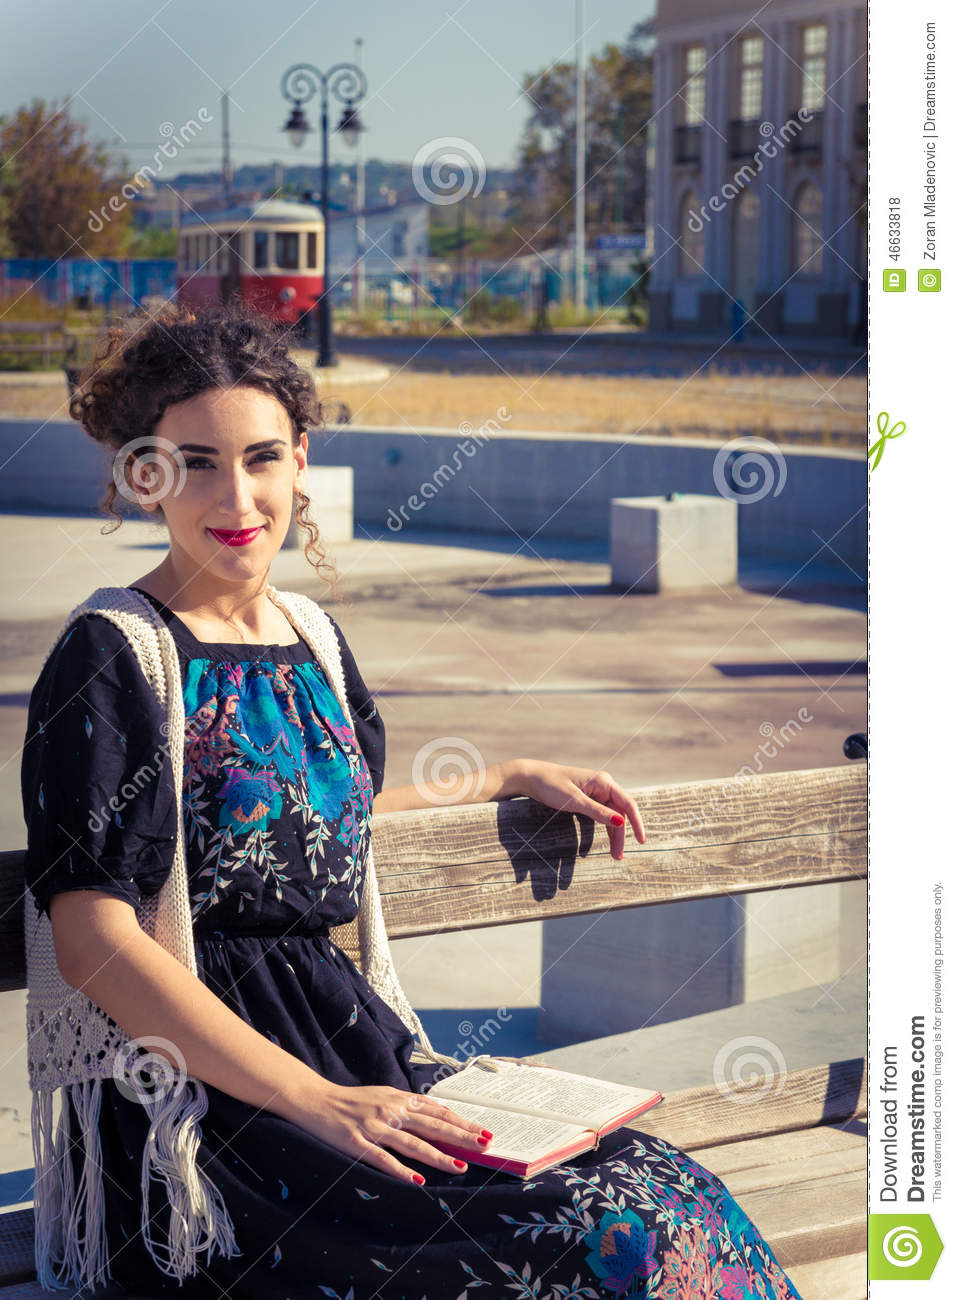 Woman sitting on a bench in the old town and reading a book